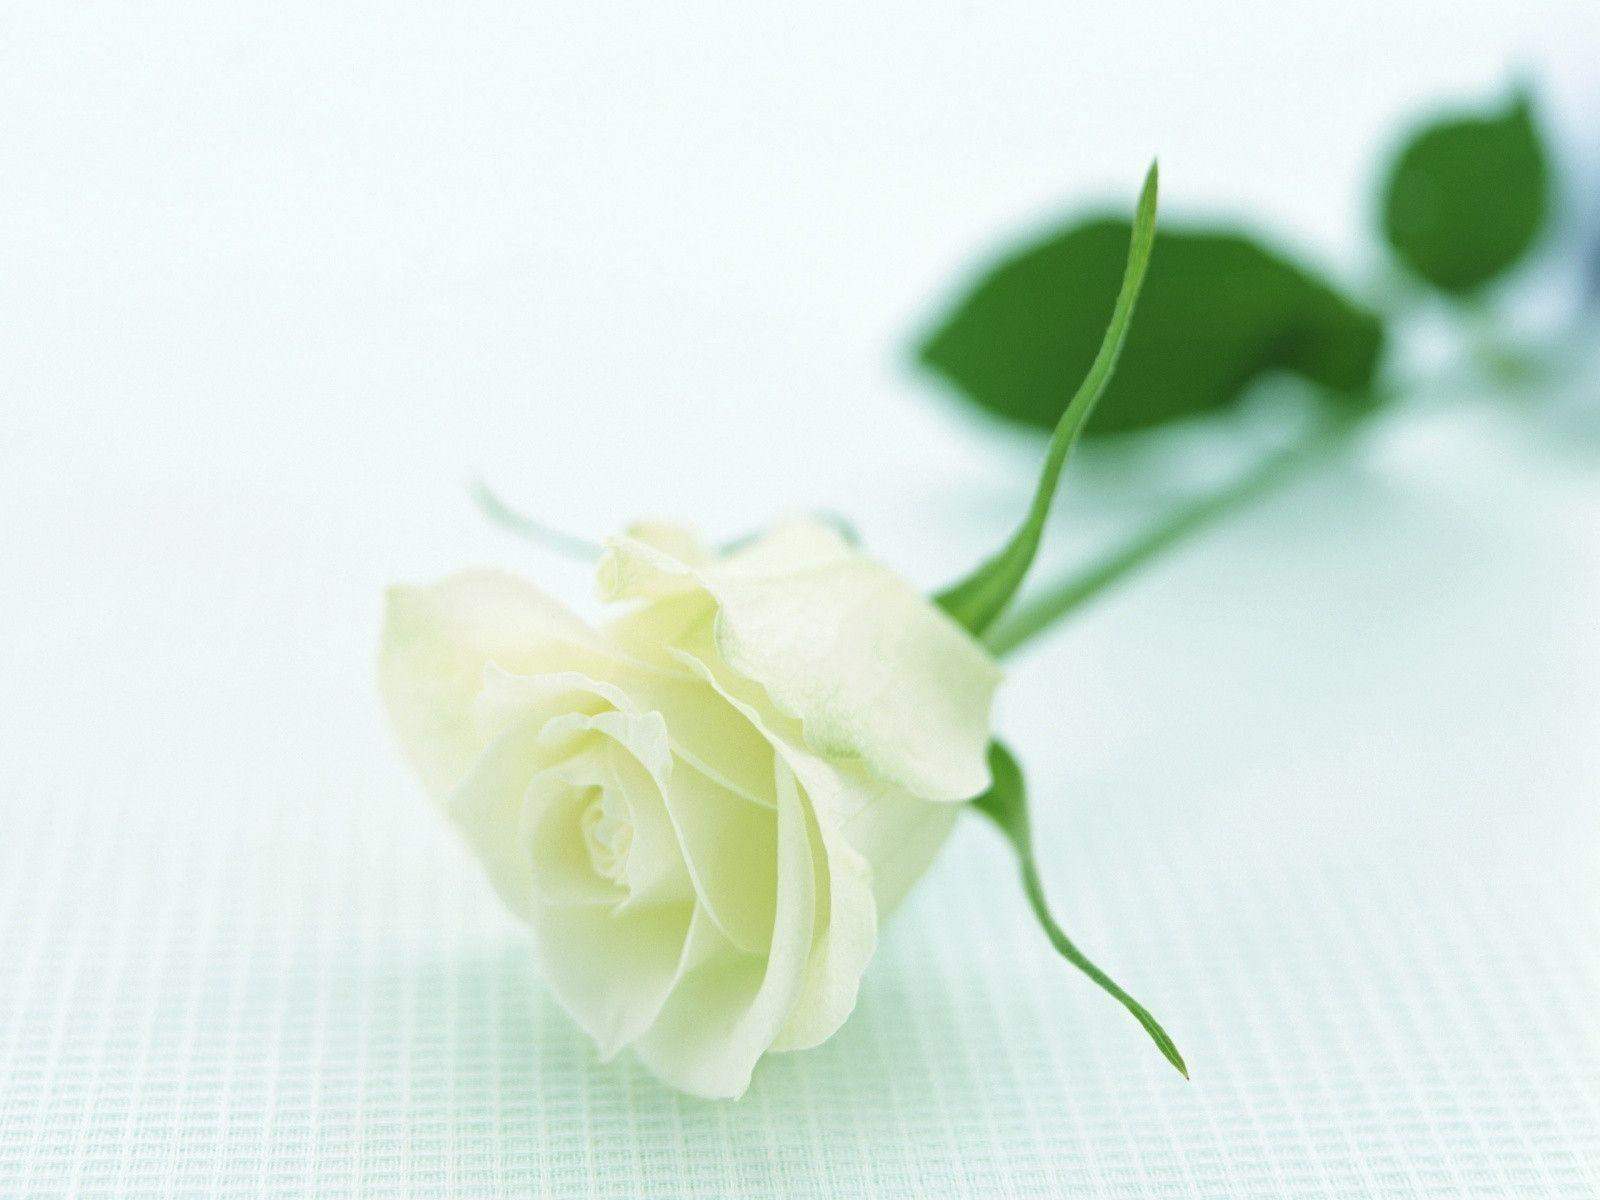 Image For > White Rose Backgrounds